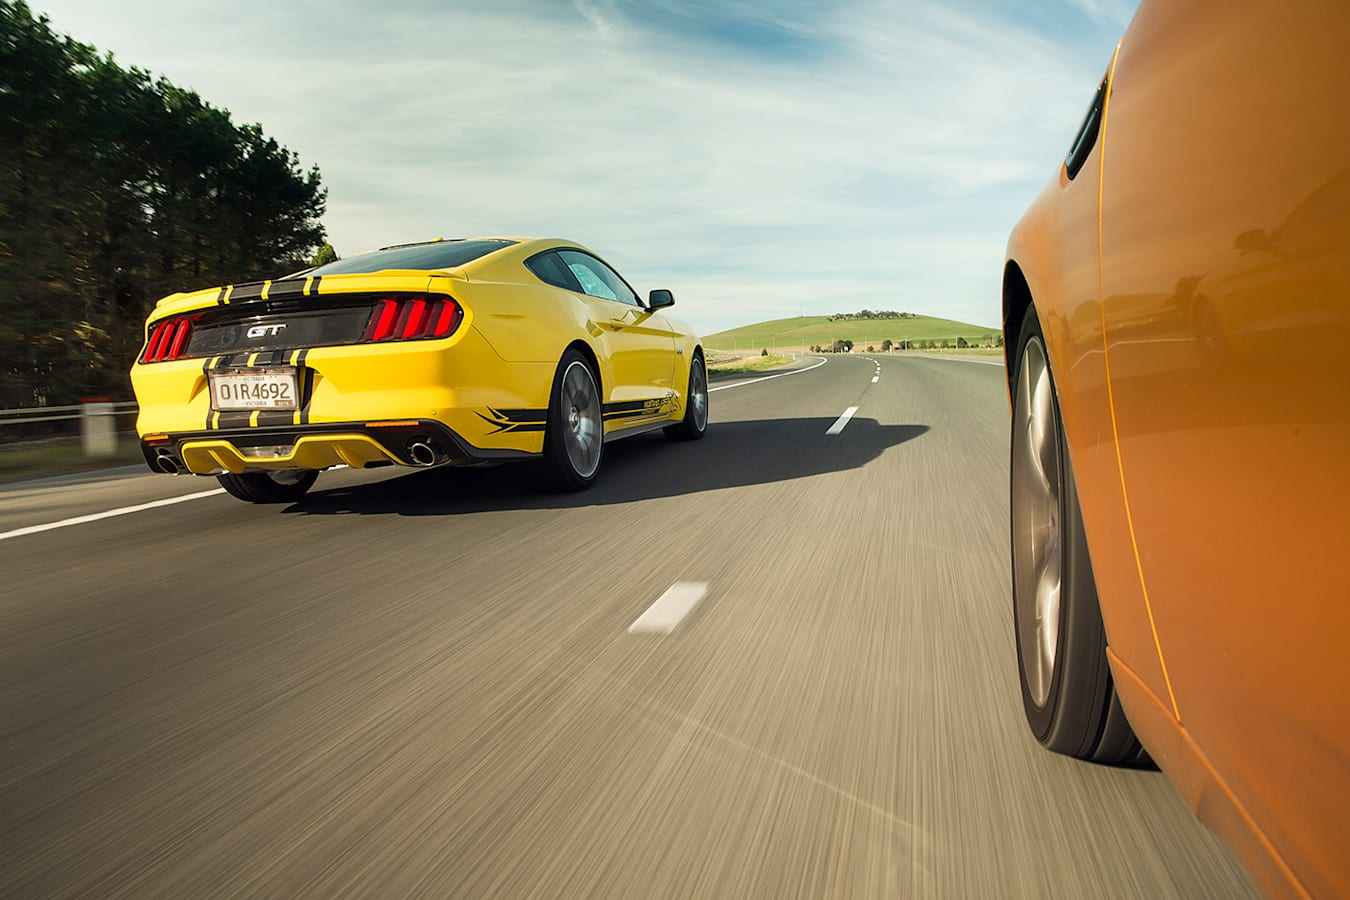 Ford Mustang vs. Falcon XR8